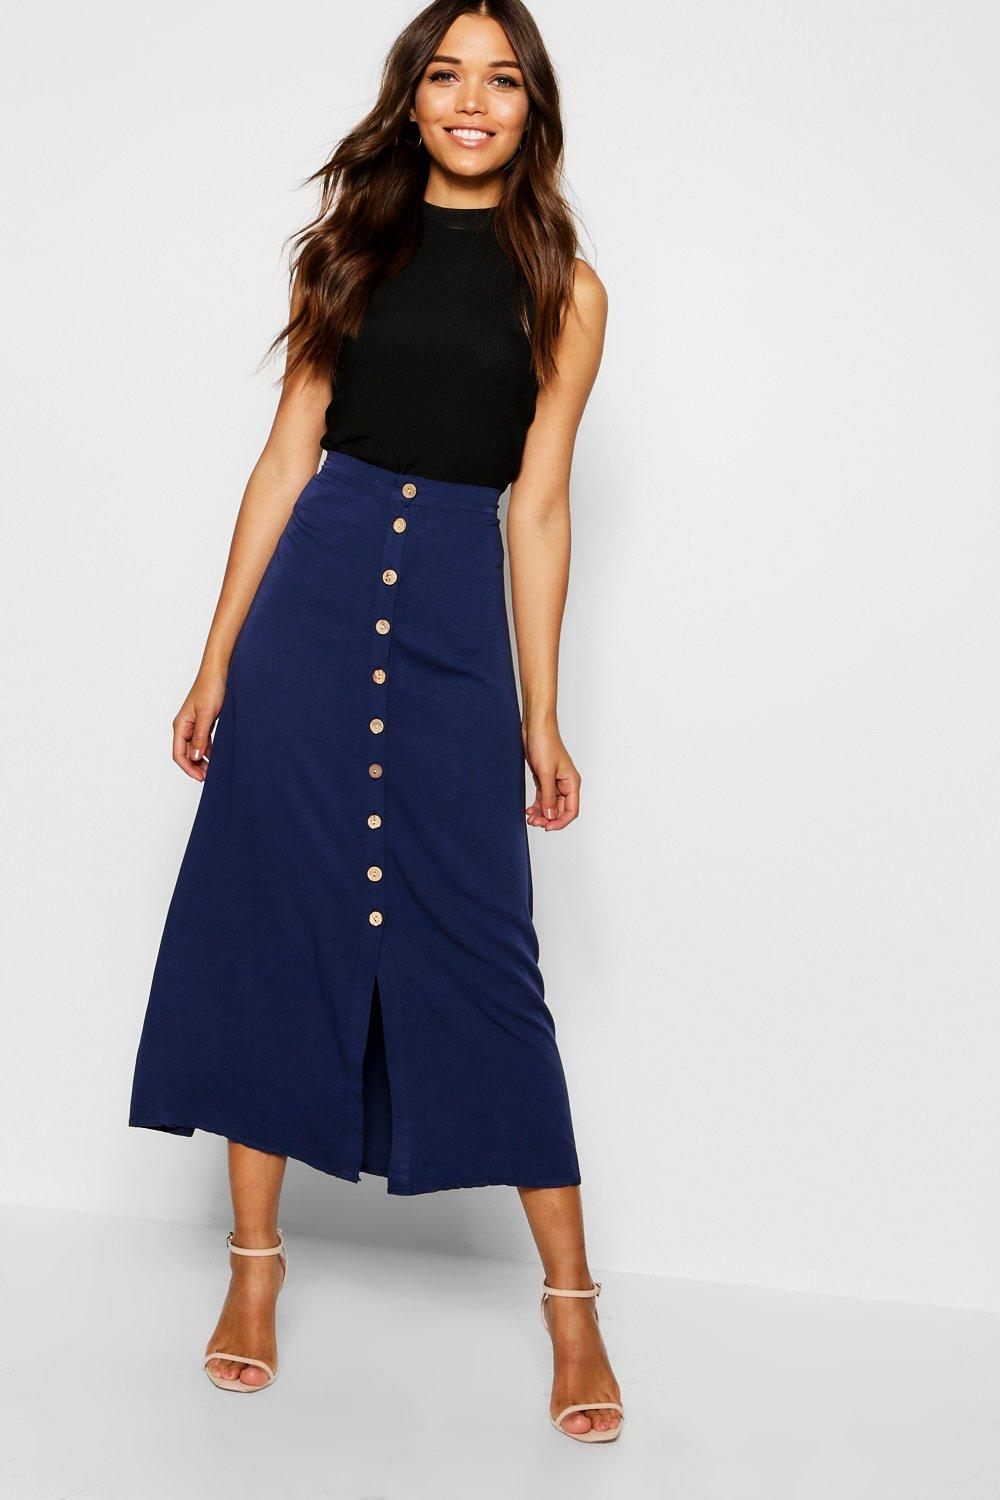 Vintage Skirts | Retro, Pencil, Swing, Boho Womens Mock Horn Button Through Midi Skirt - Navy - 12 $14.40 AT vintagedancer.com